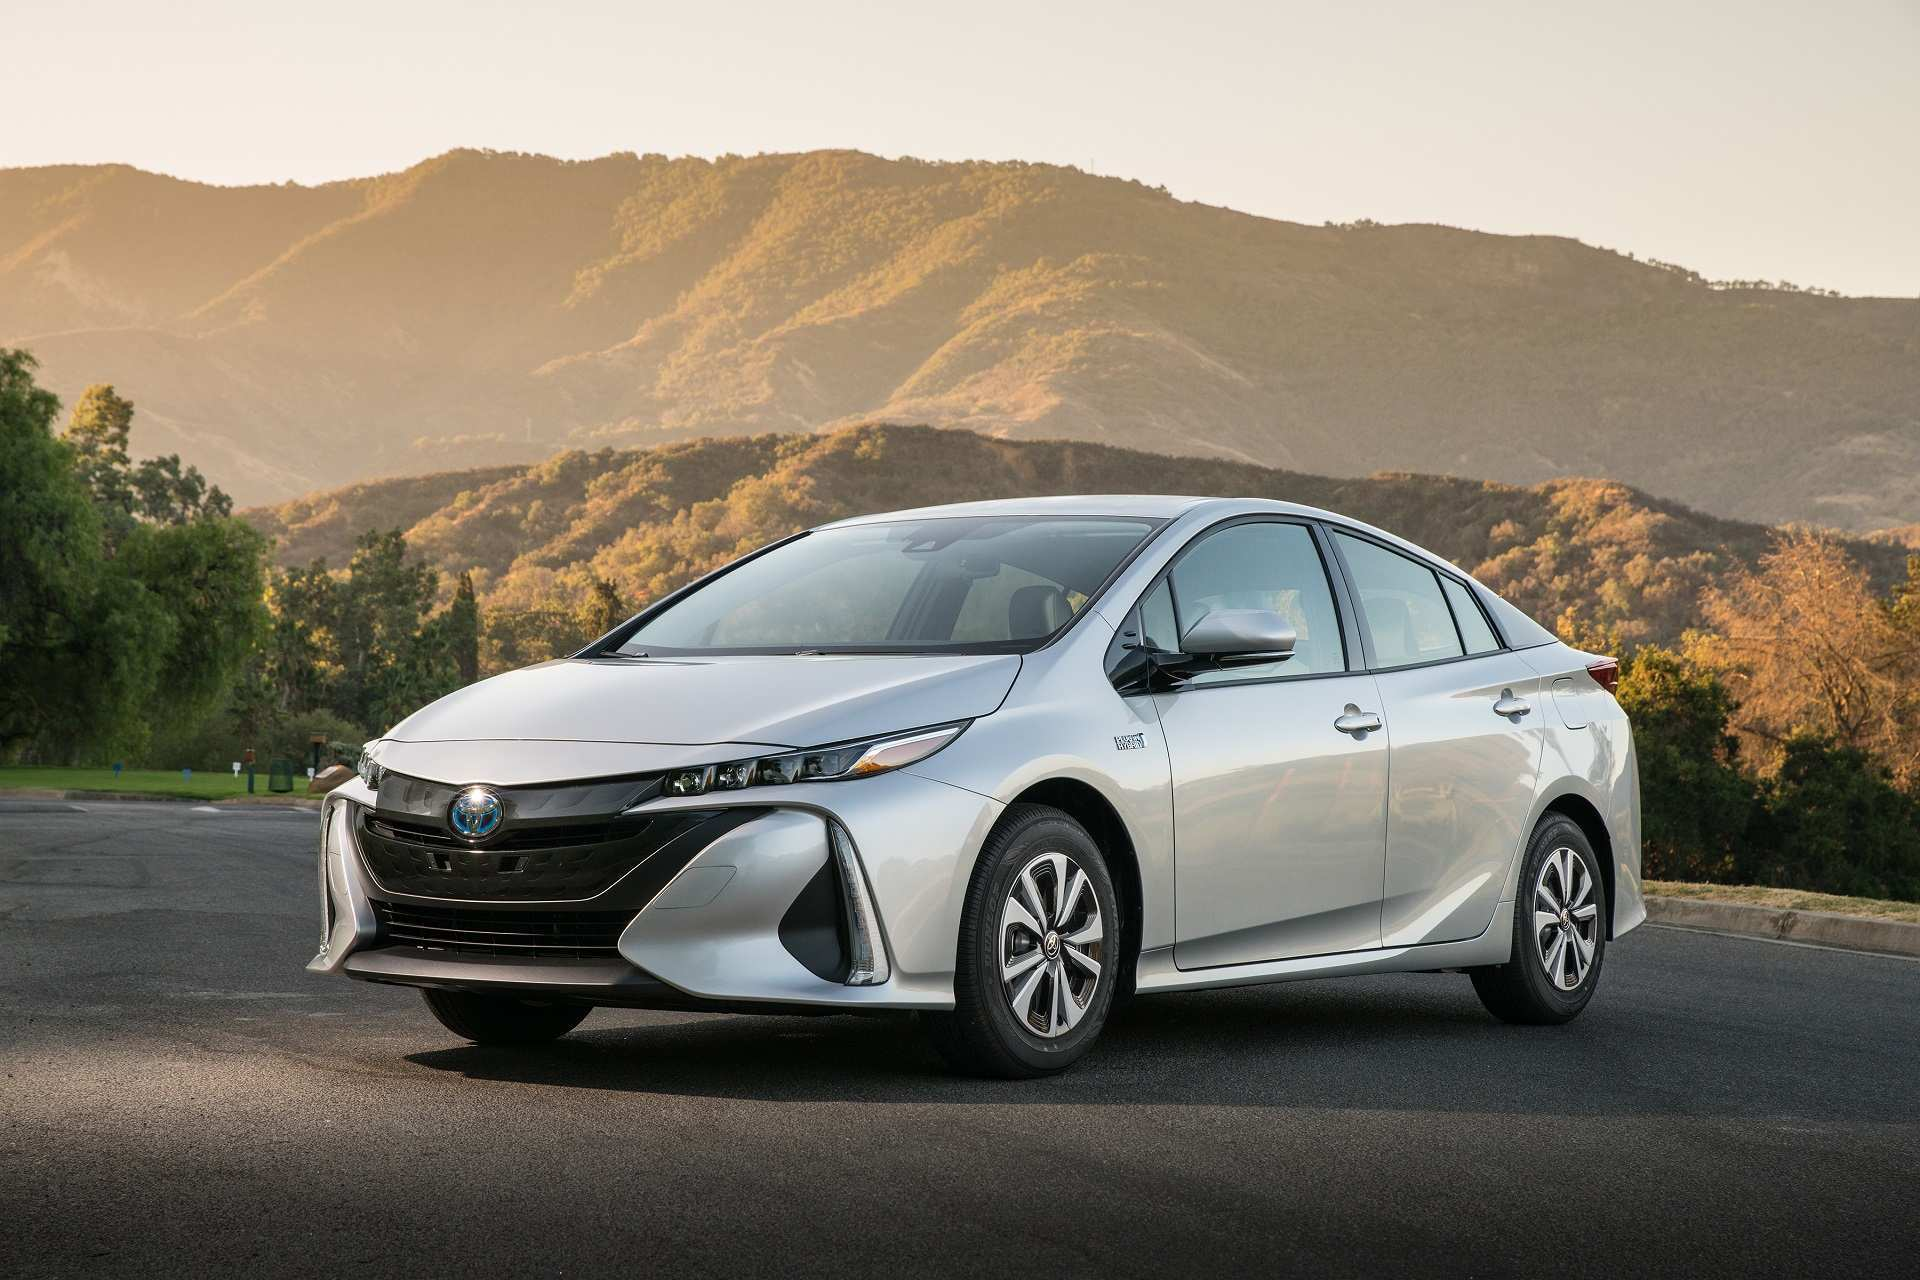 87 All New 2019 Toyota Prius Plug In Hybrid Prices